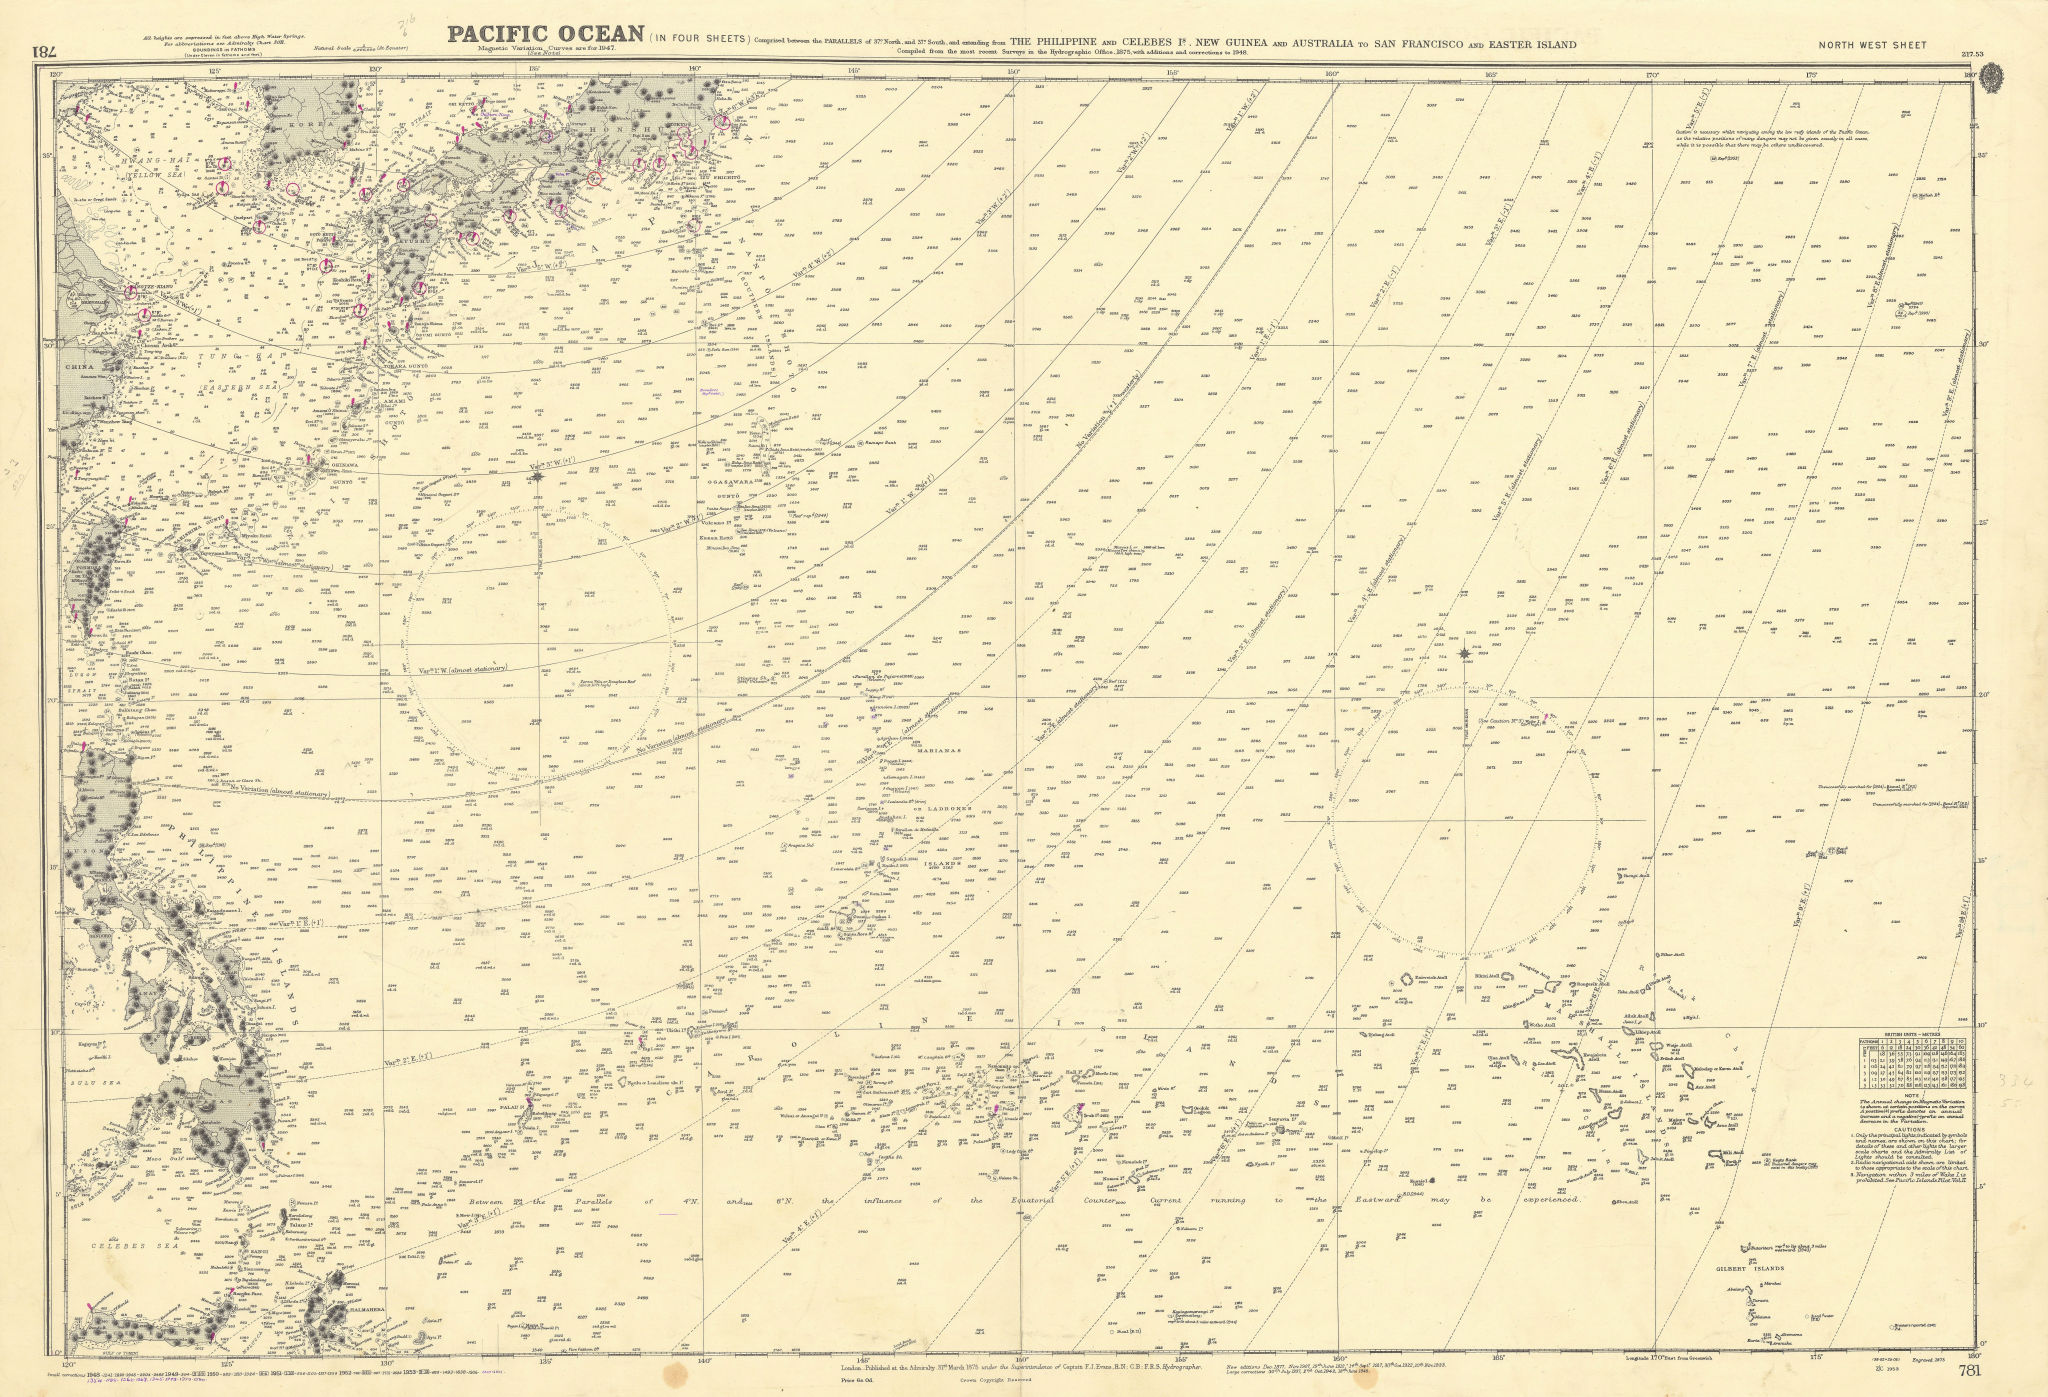 Pacific Ocean North west sheet. Micronesia. ADMIRALTY sea chart 1875 (1954) map